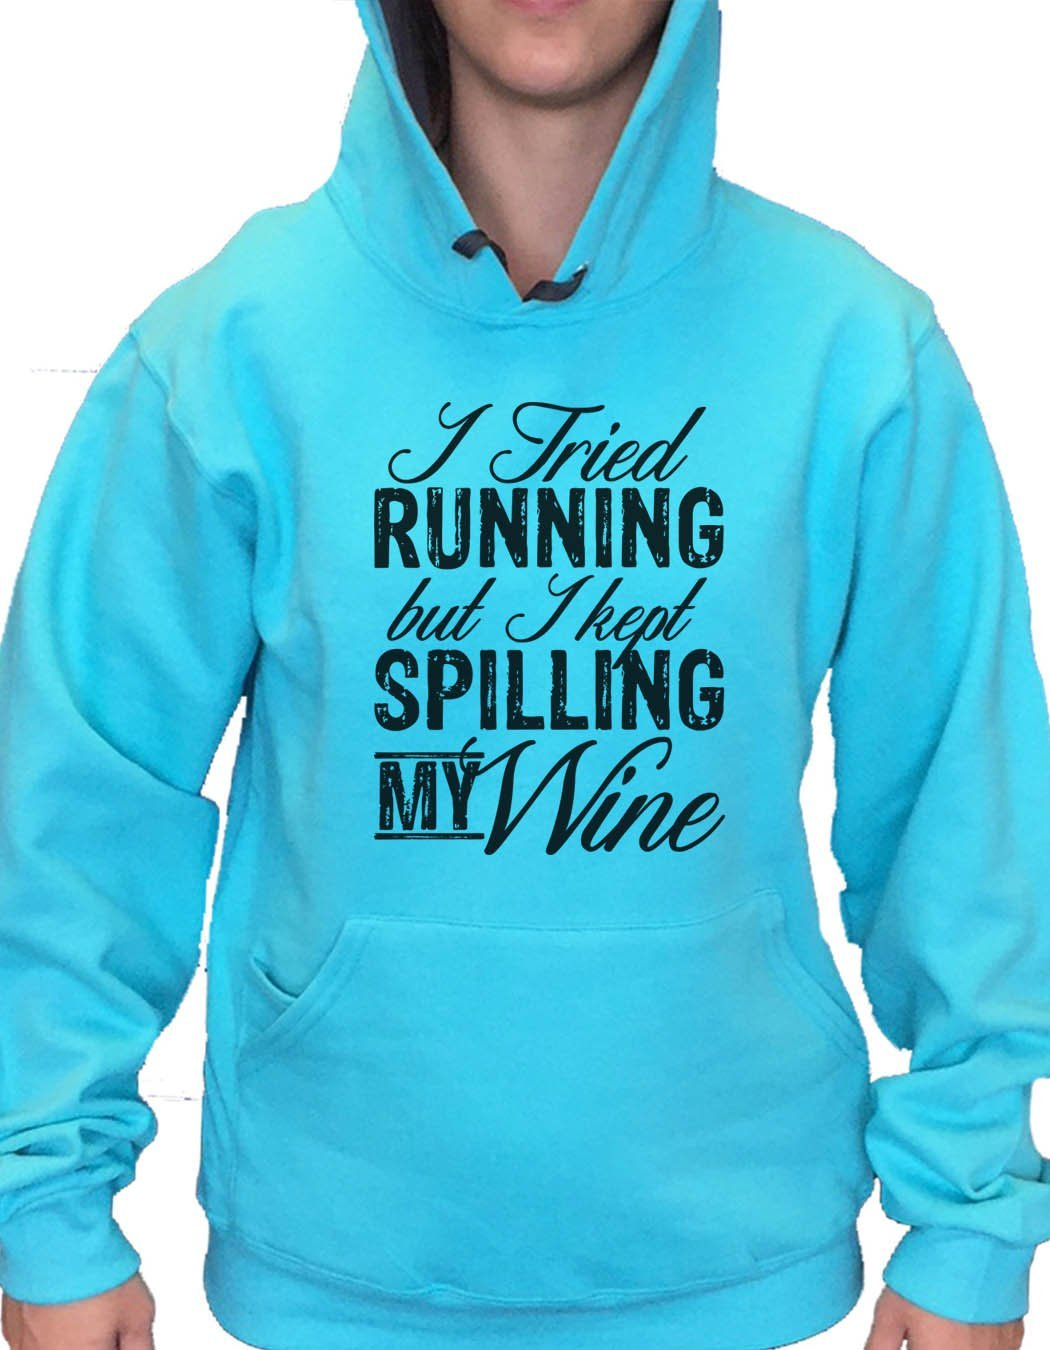 UNISEX HOODIE - I Tried Running But I Kept Spilling My Wine - FUNNY MENS AND WOMENS HOODED SWEATSHIRTS - 2160 Funny Shirt Small / Turquoise